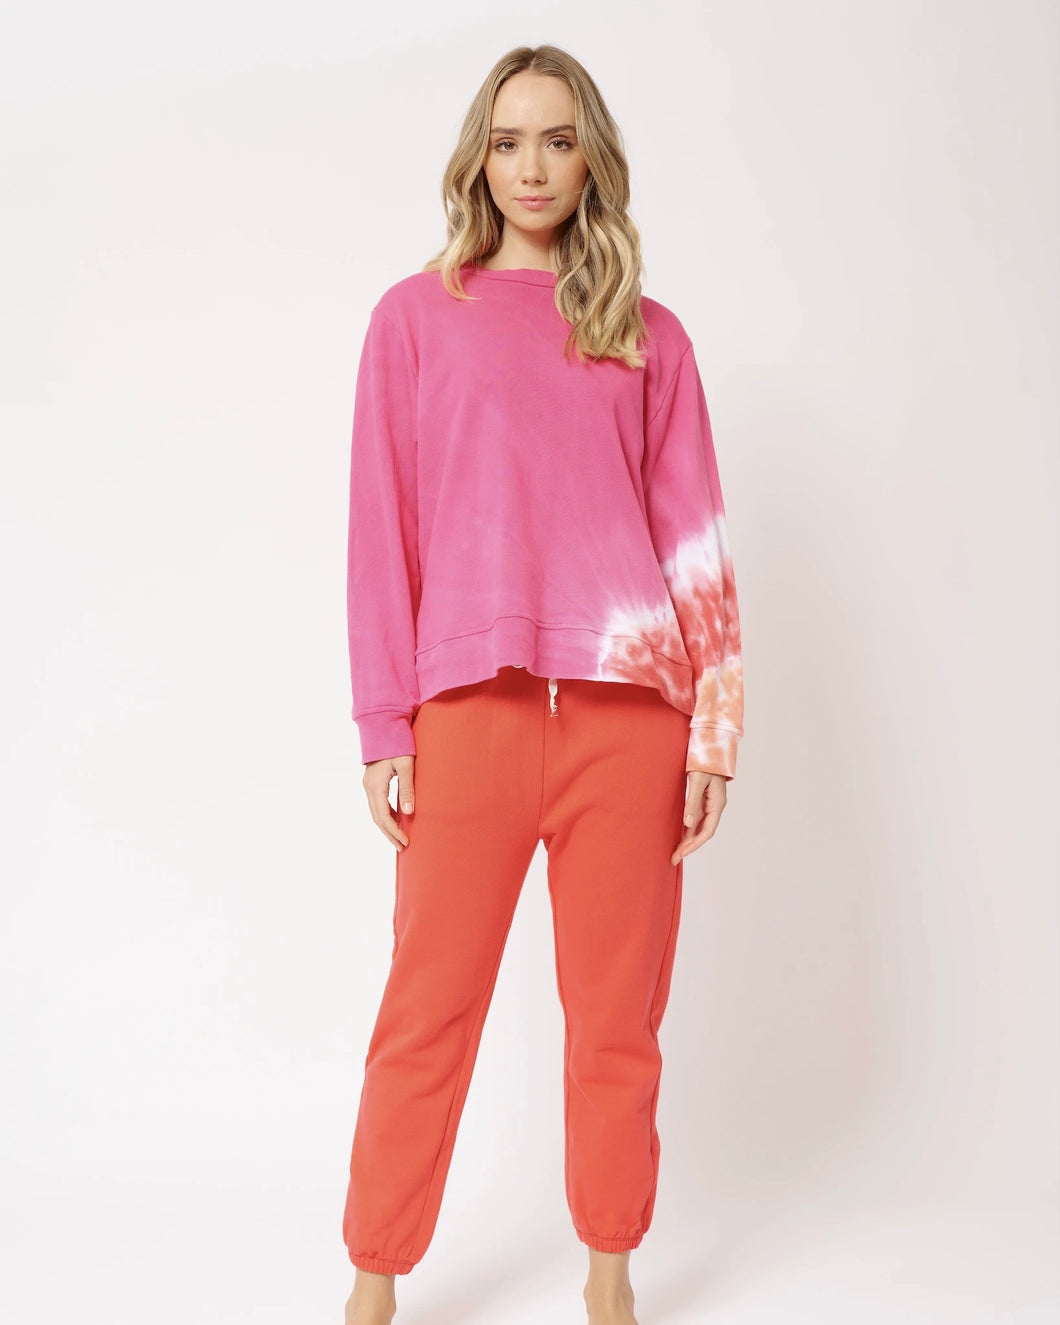 Lollipop Swirl Sweat in Hot Pink by Alessandra